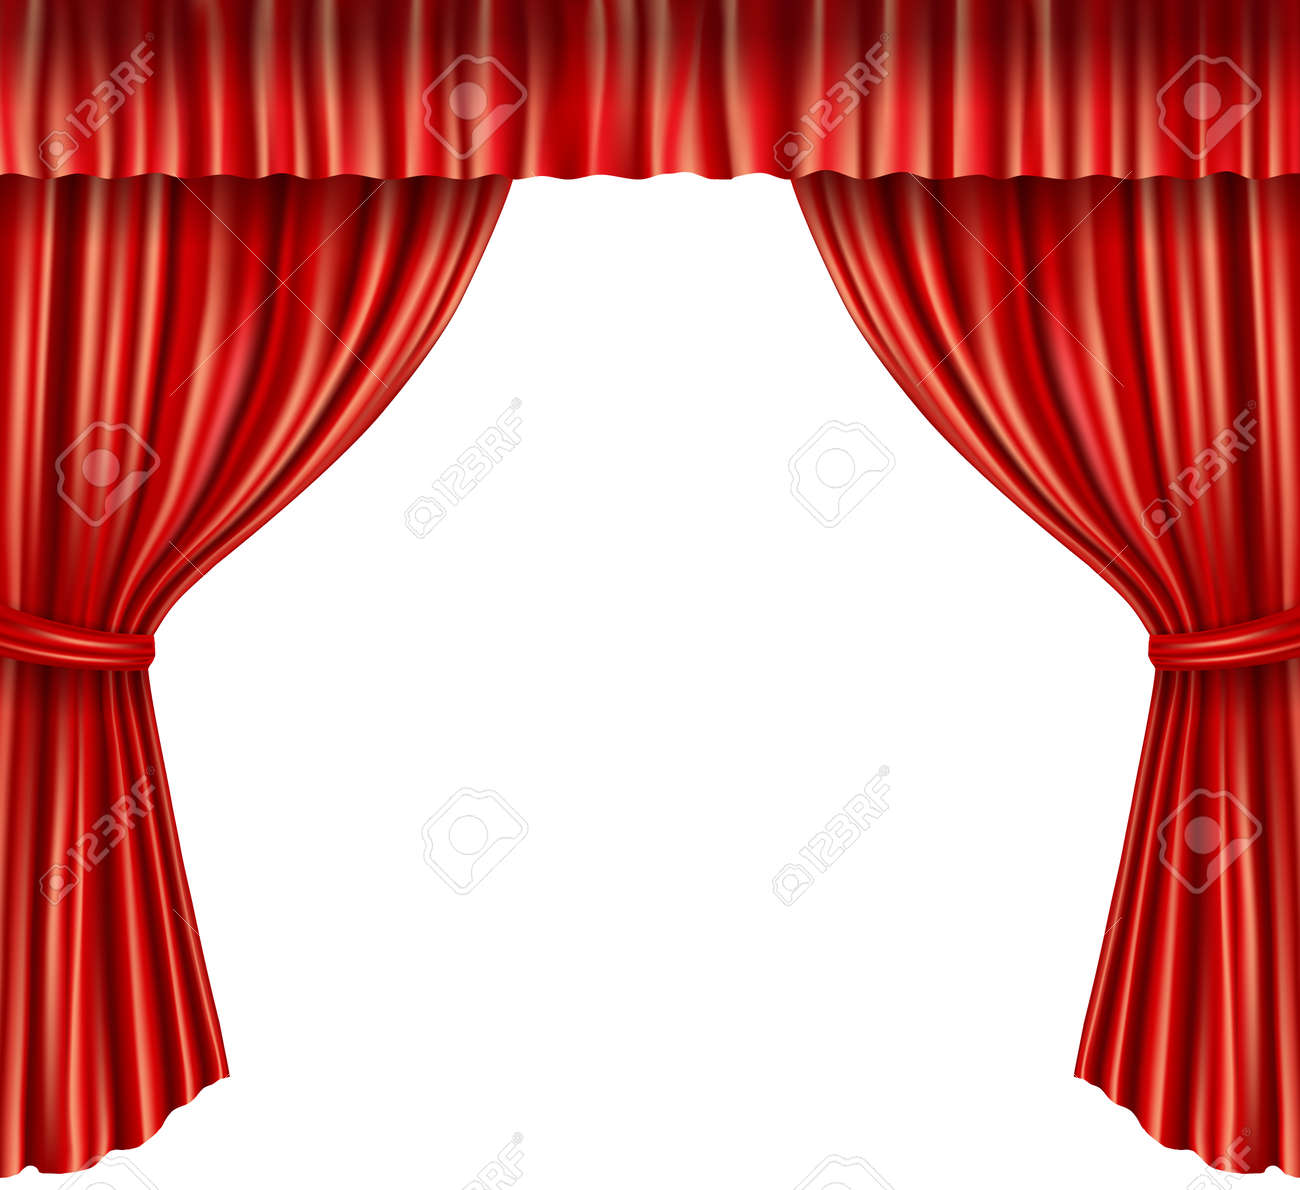 Theater stage red velvet open retro style curtain isolated on white background vector illustration - 167123931